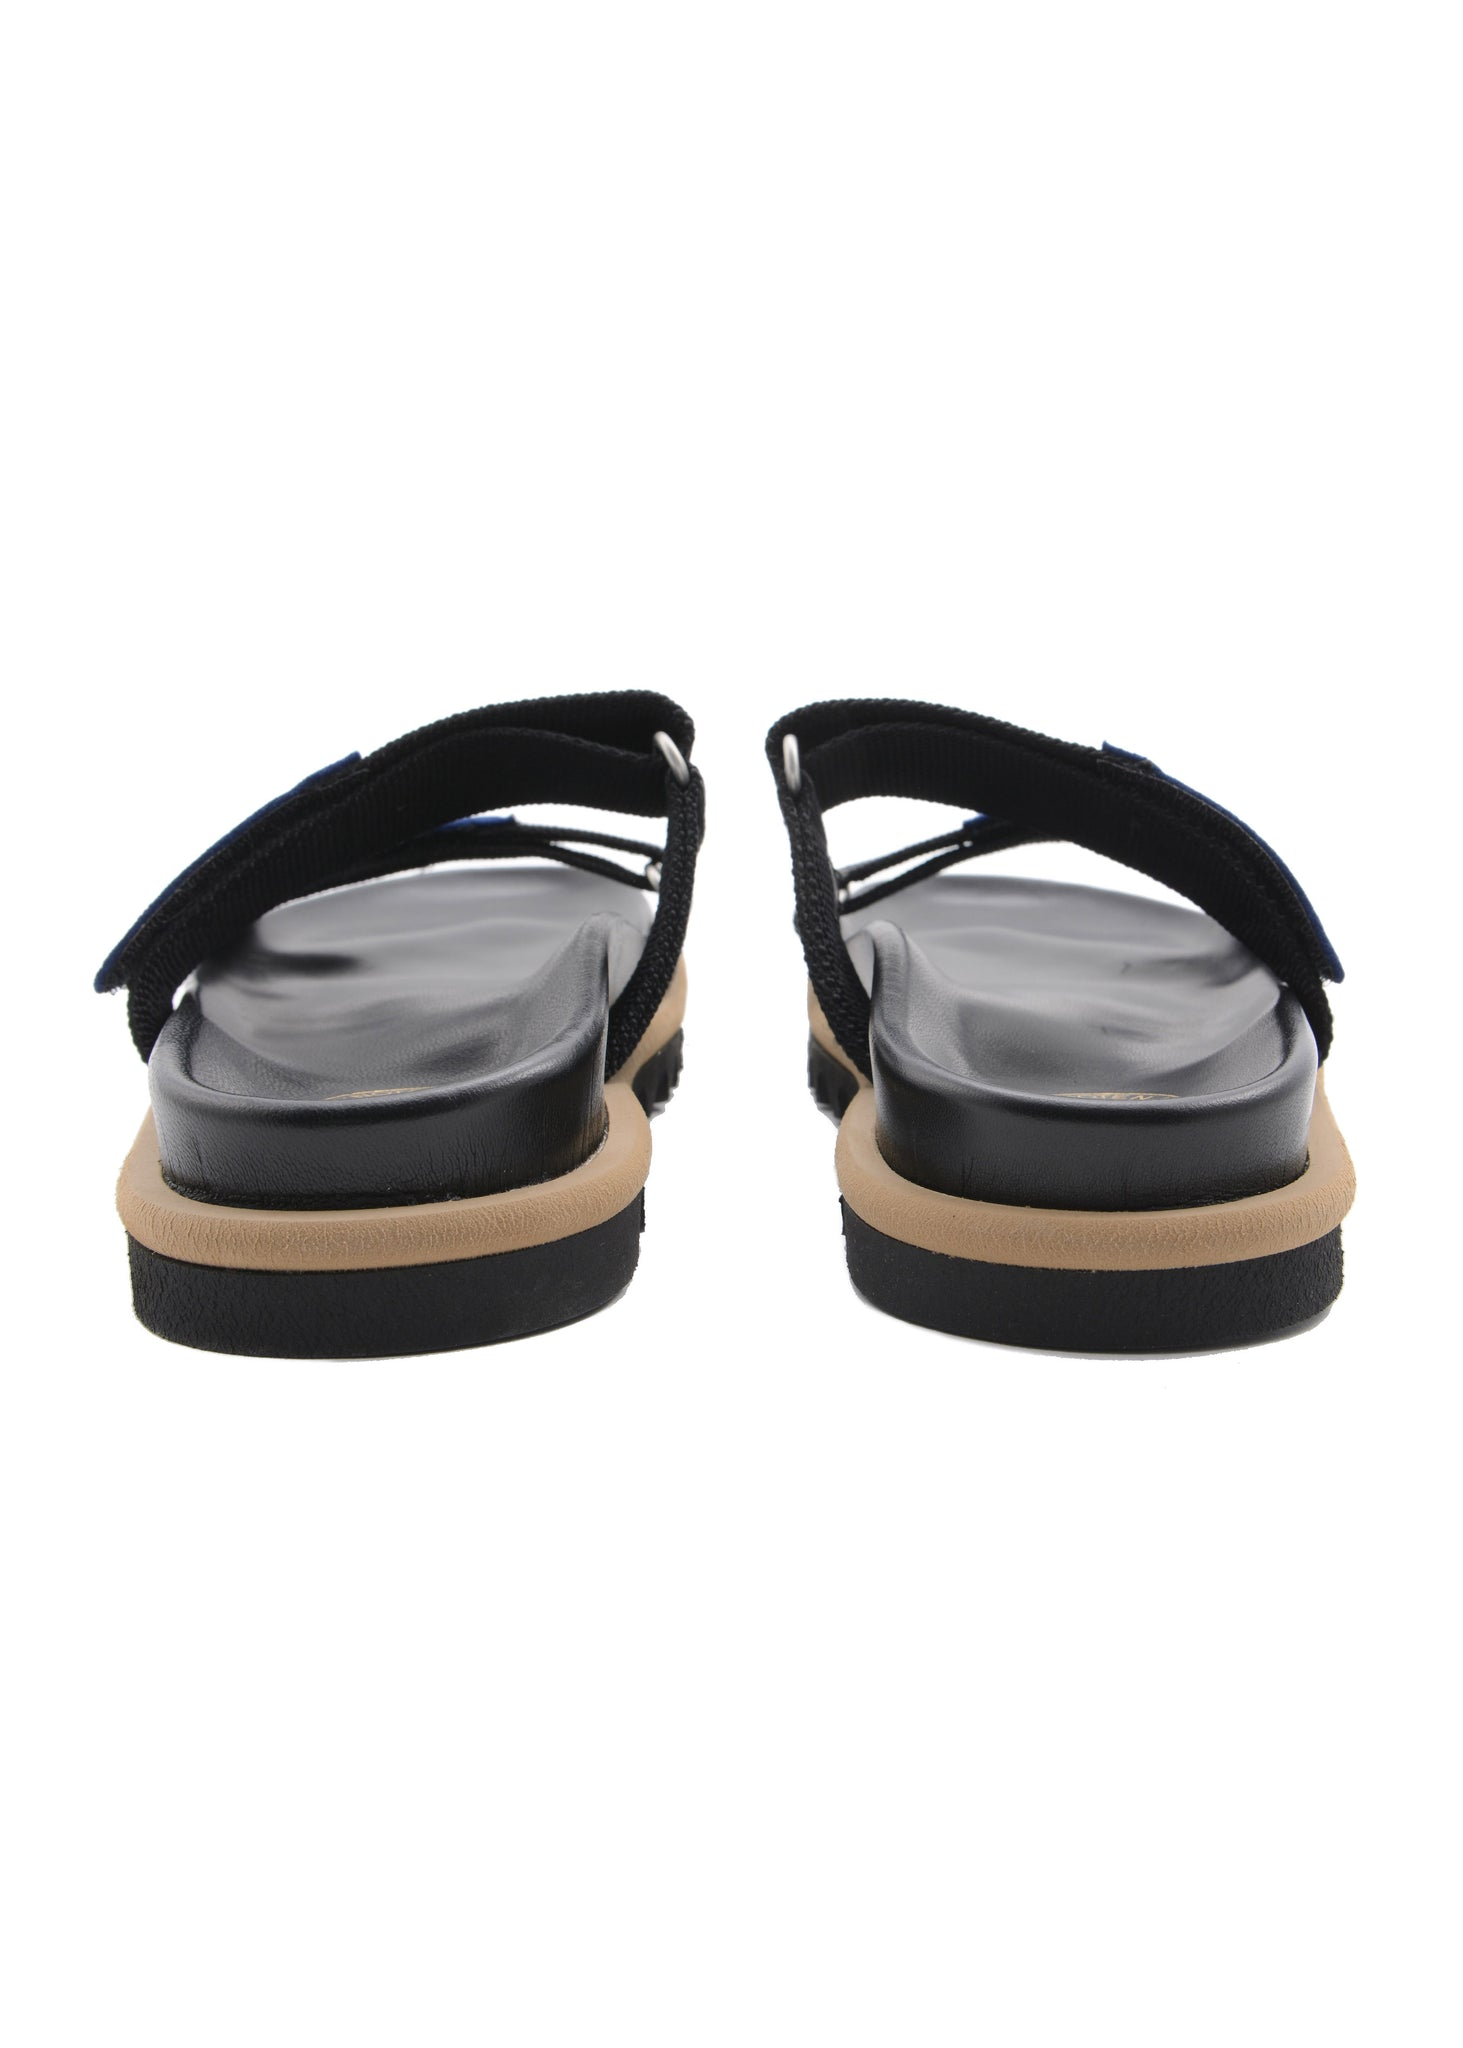 Sandale à Sangle Velcro Noire & Bleue|Black & Blue Strap Slide Sandals